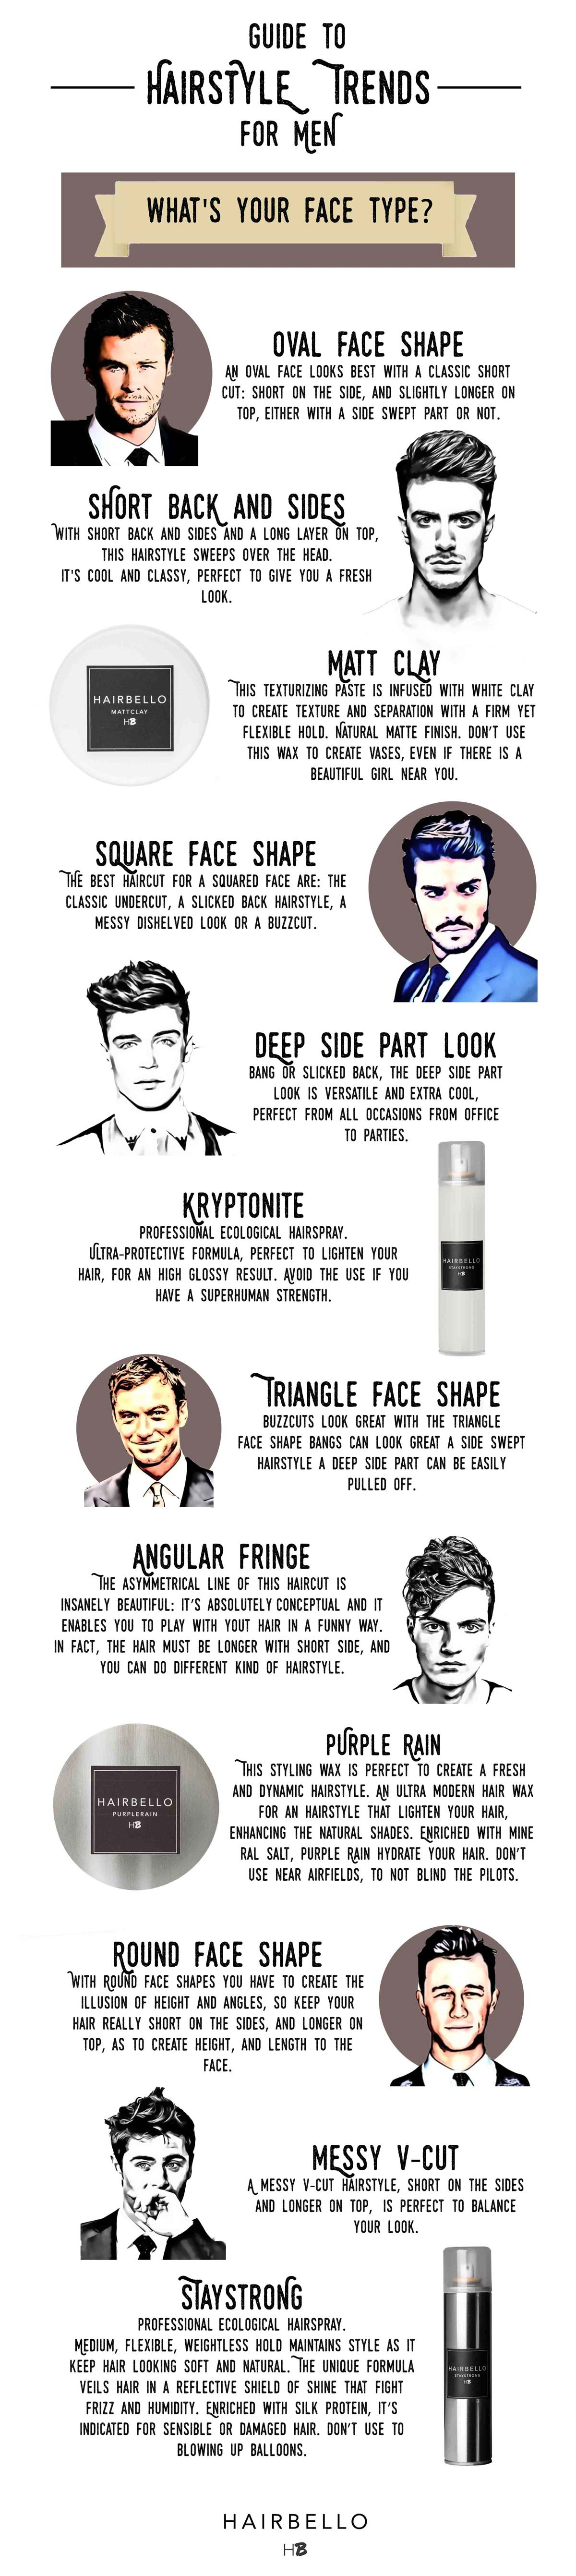 V cut haircut men hairbello  guide to hairstyle for men  menus guides  pinterest